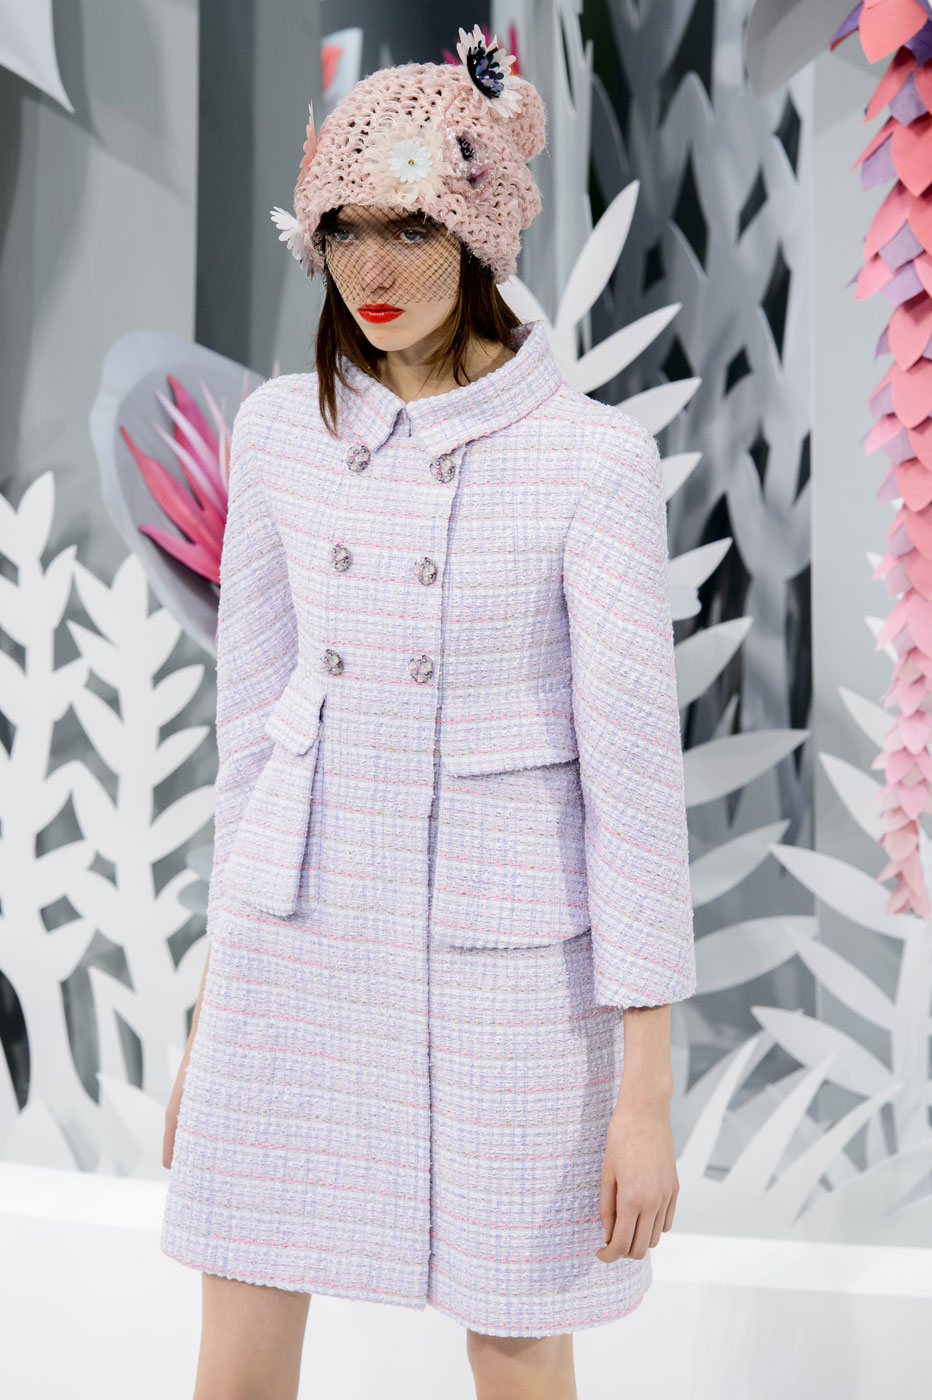 Chanel-fashion-runway-show-haute-couture-paris-spring-summer-2015-the-impression-026